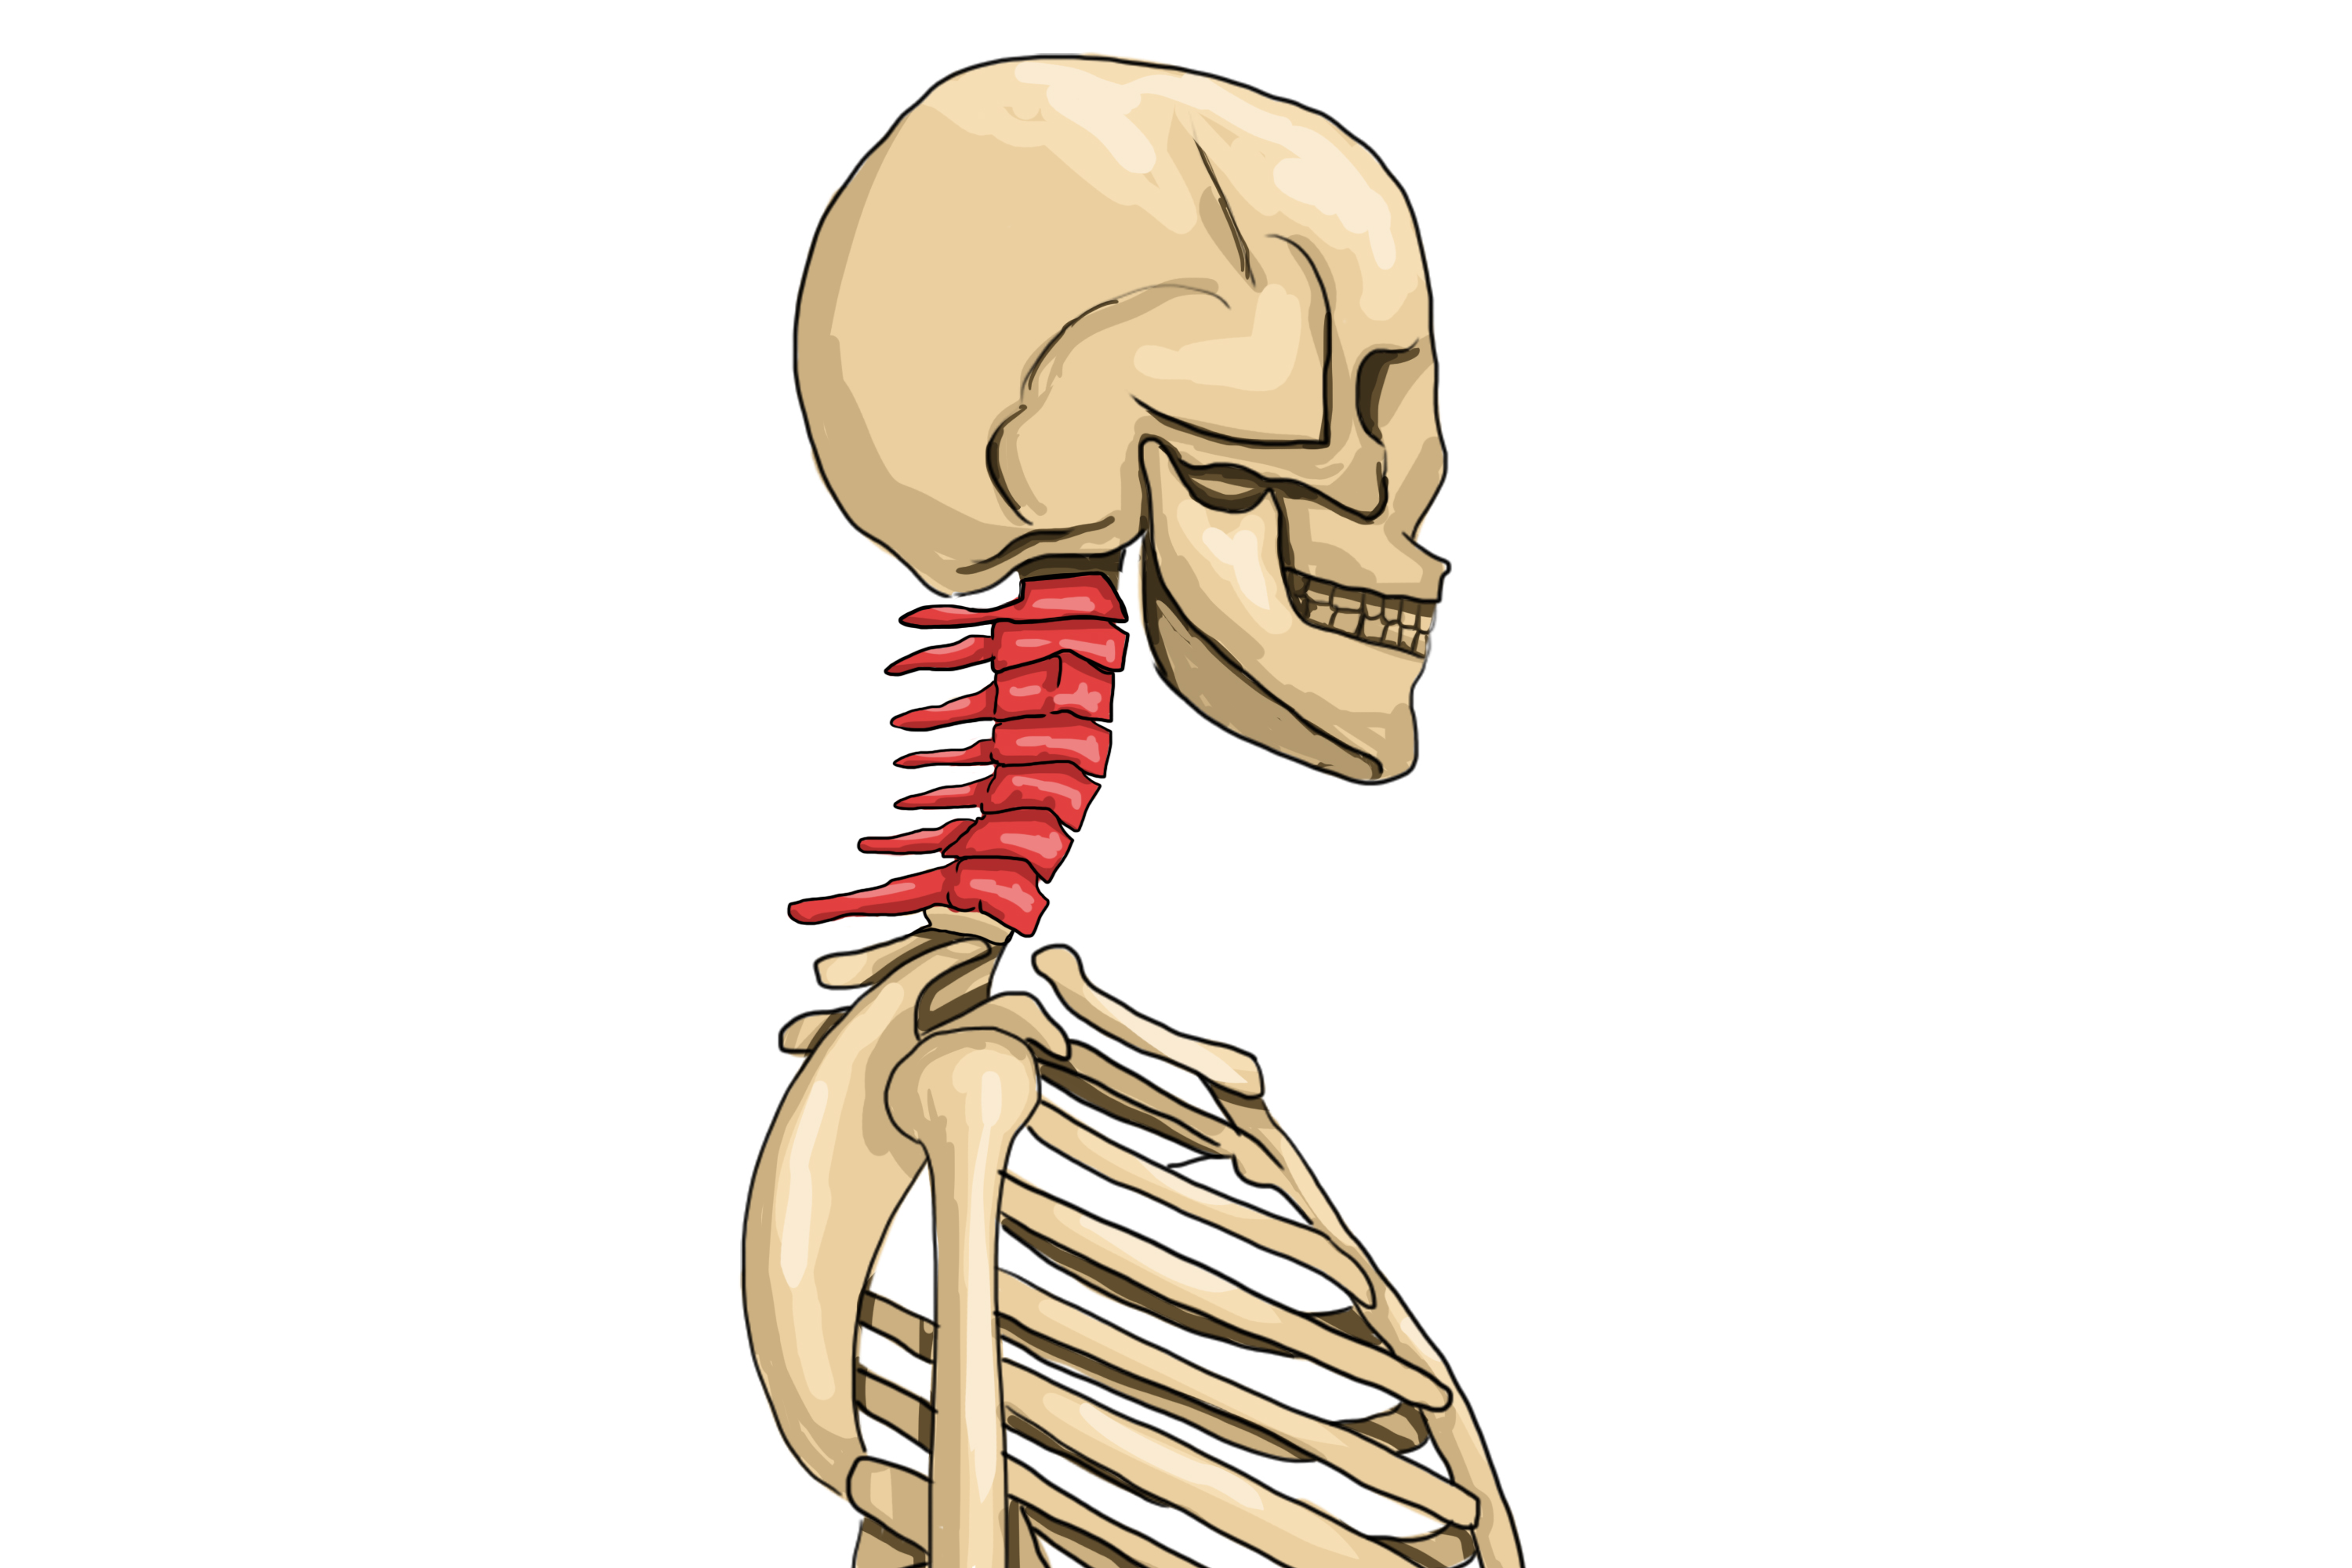 The first 7 vertebrae are called the cervical region